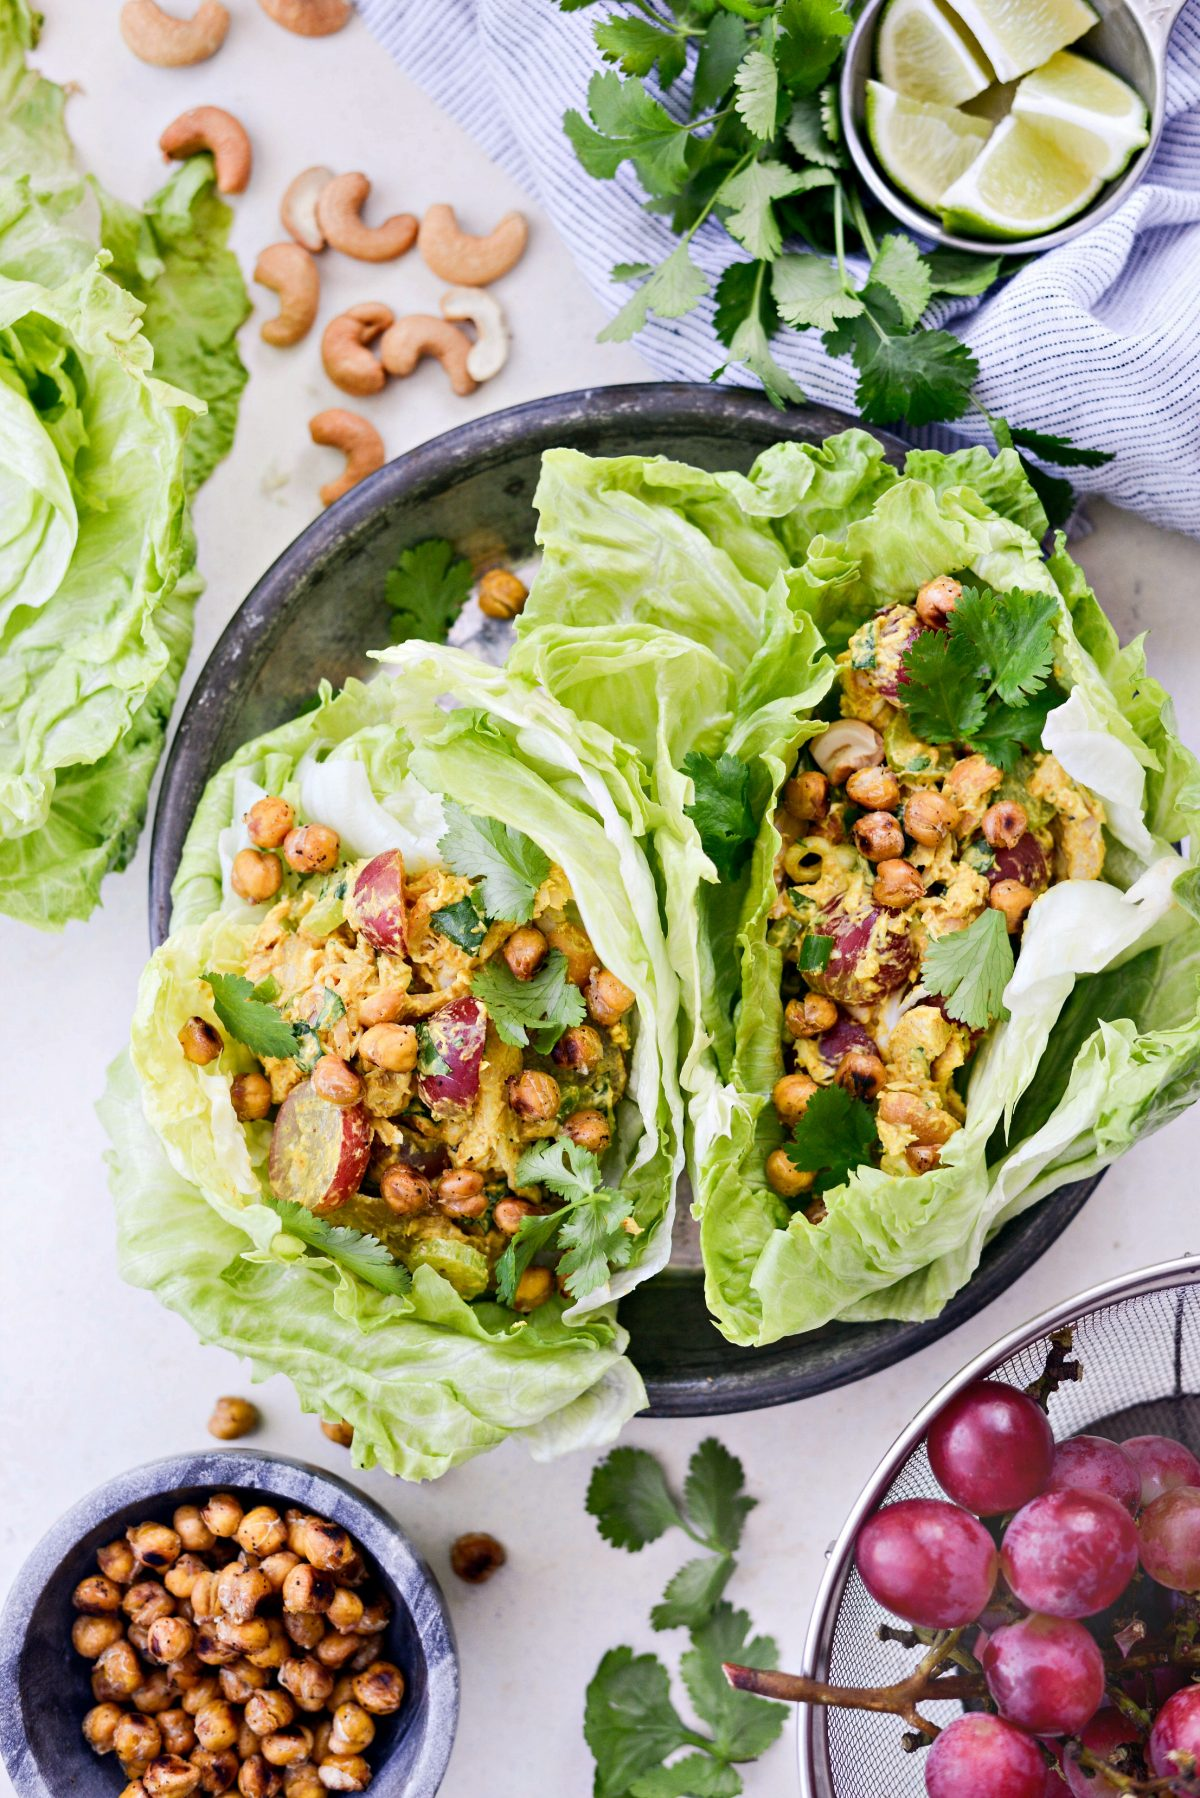 Curried Chicken Salad with Grapes and Cashews l SimplyScratch.com #curry #turmeric #chicken #salad #healthy #grapes #cashews #lunch #easy #recipe